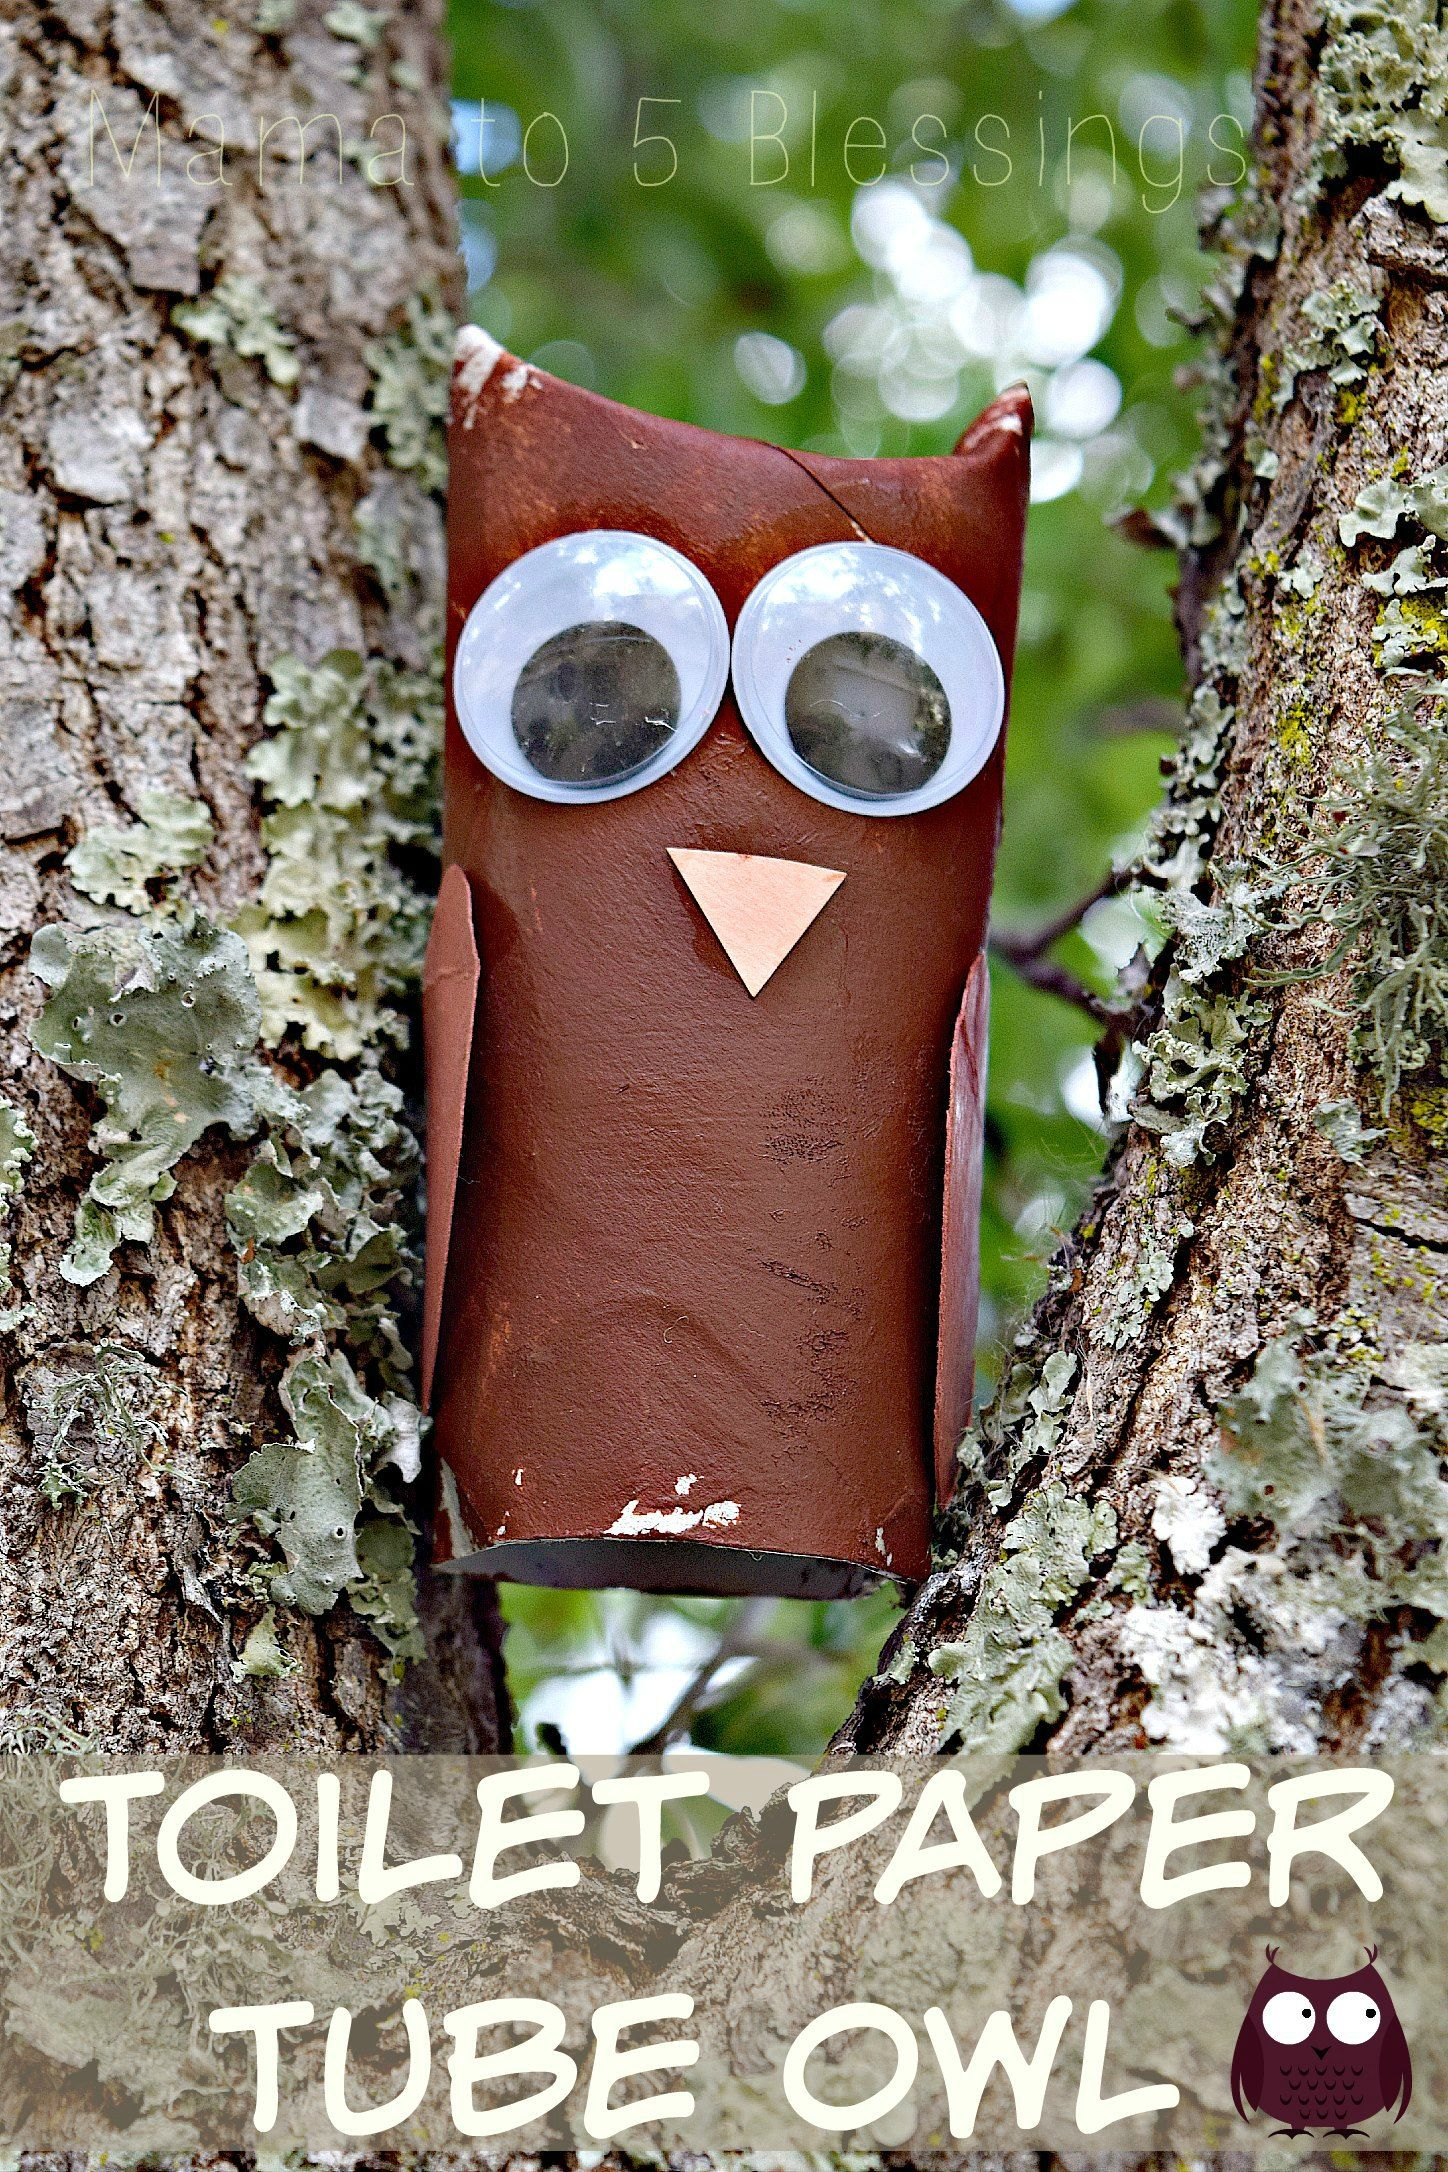 Toilet paper tube owl. Super easy craft to make with kids plus it is great for Earth Day as the main part of the owl is made from a recycled item! http://mamato5blessings.com/2015/04/toilet-paper-tube-owl-kids-craft-linky/